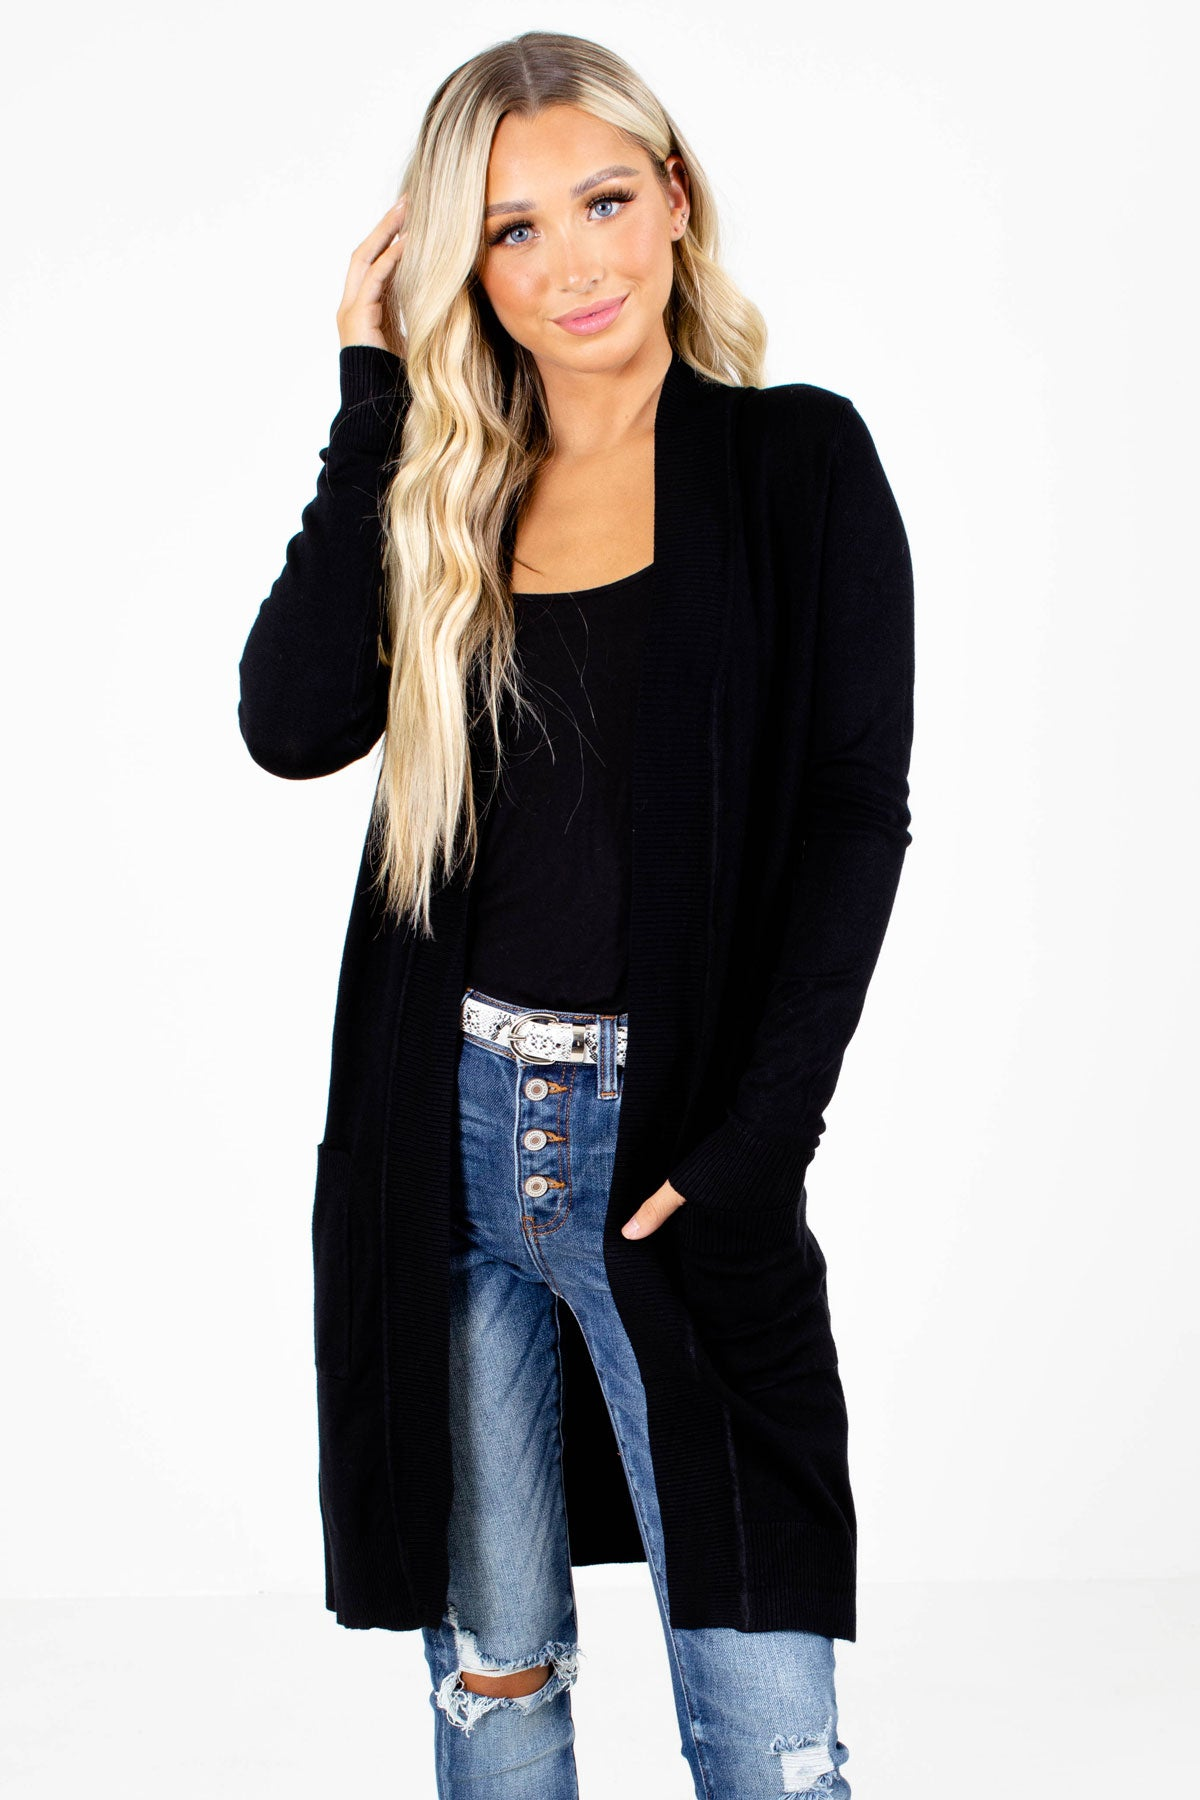 Black Longer Length Boutique Cardigans for Women